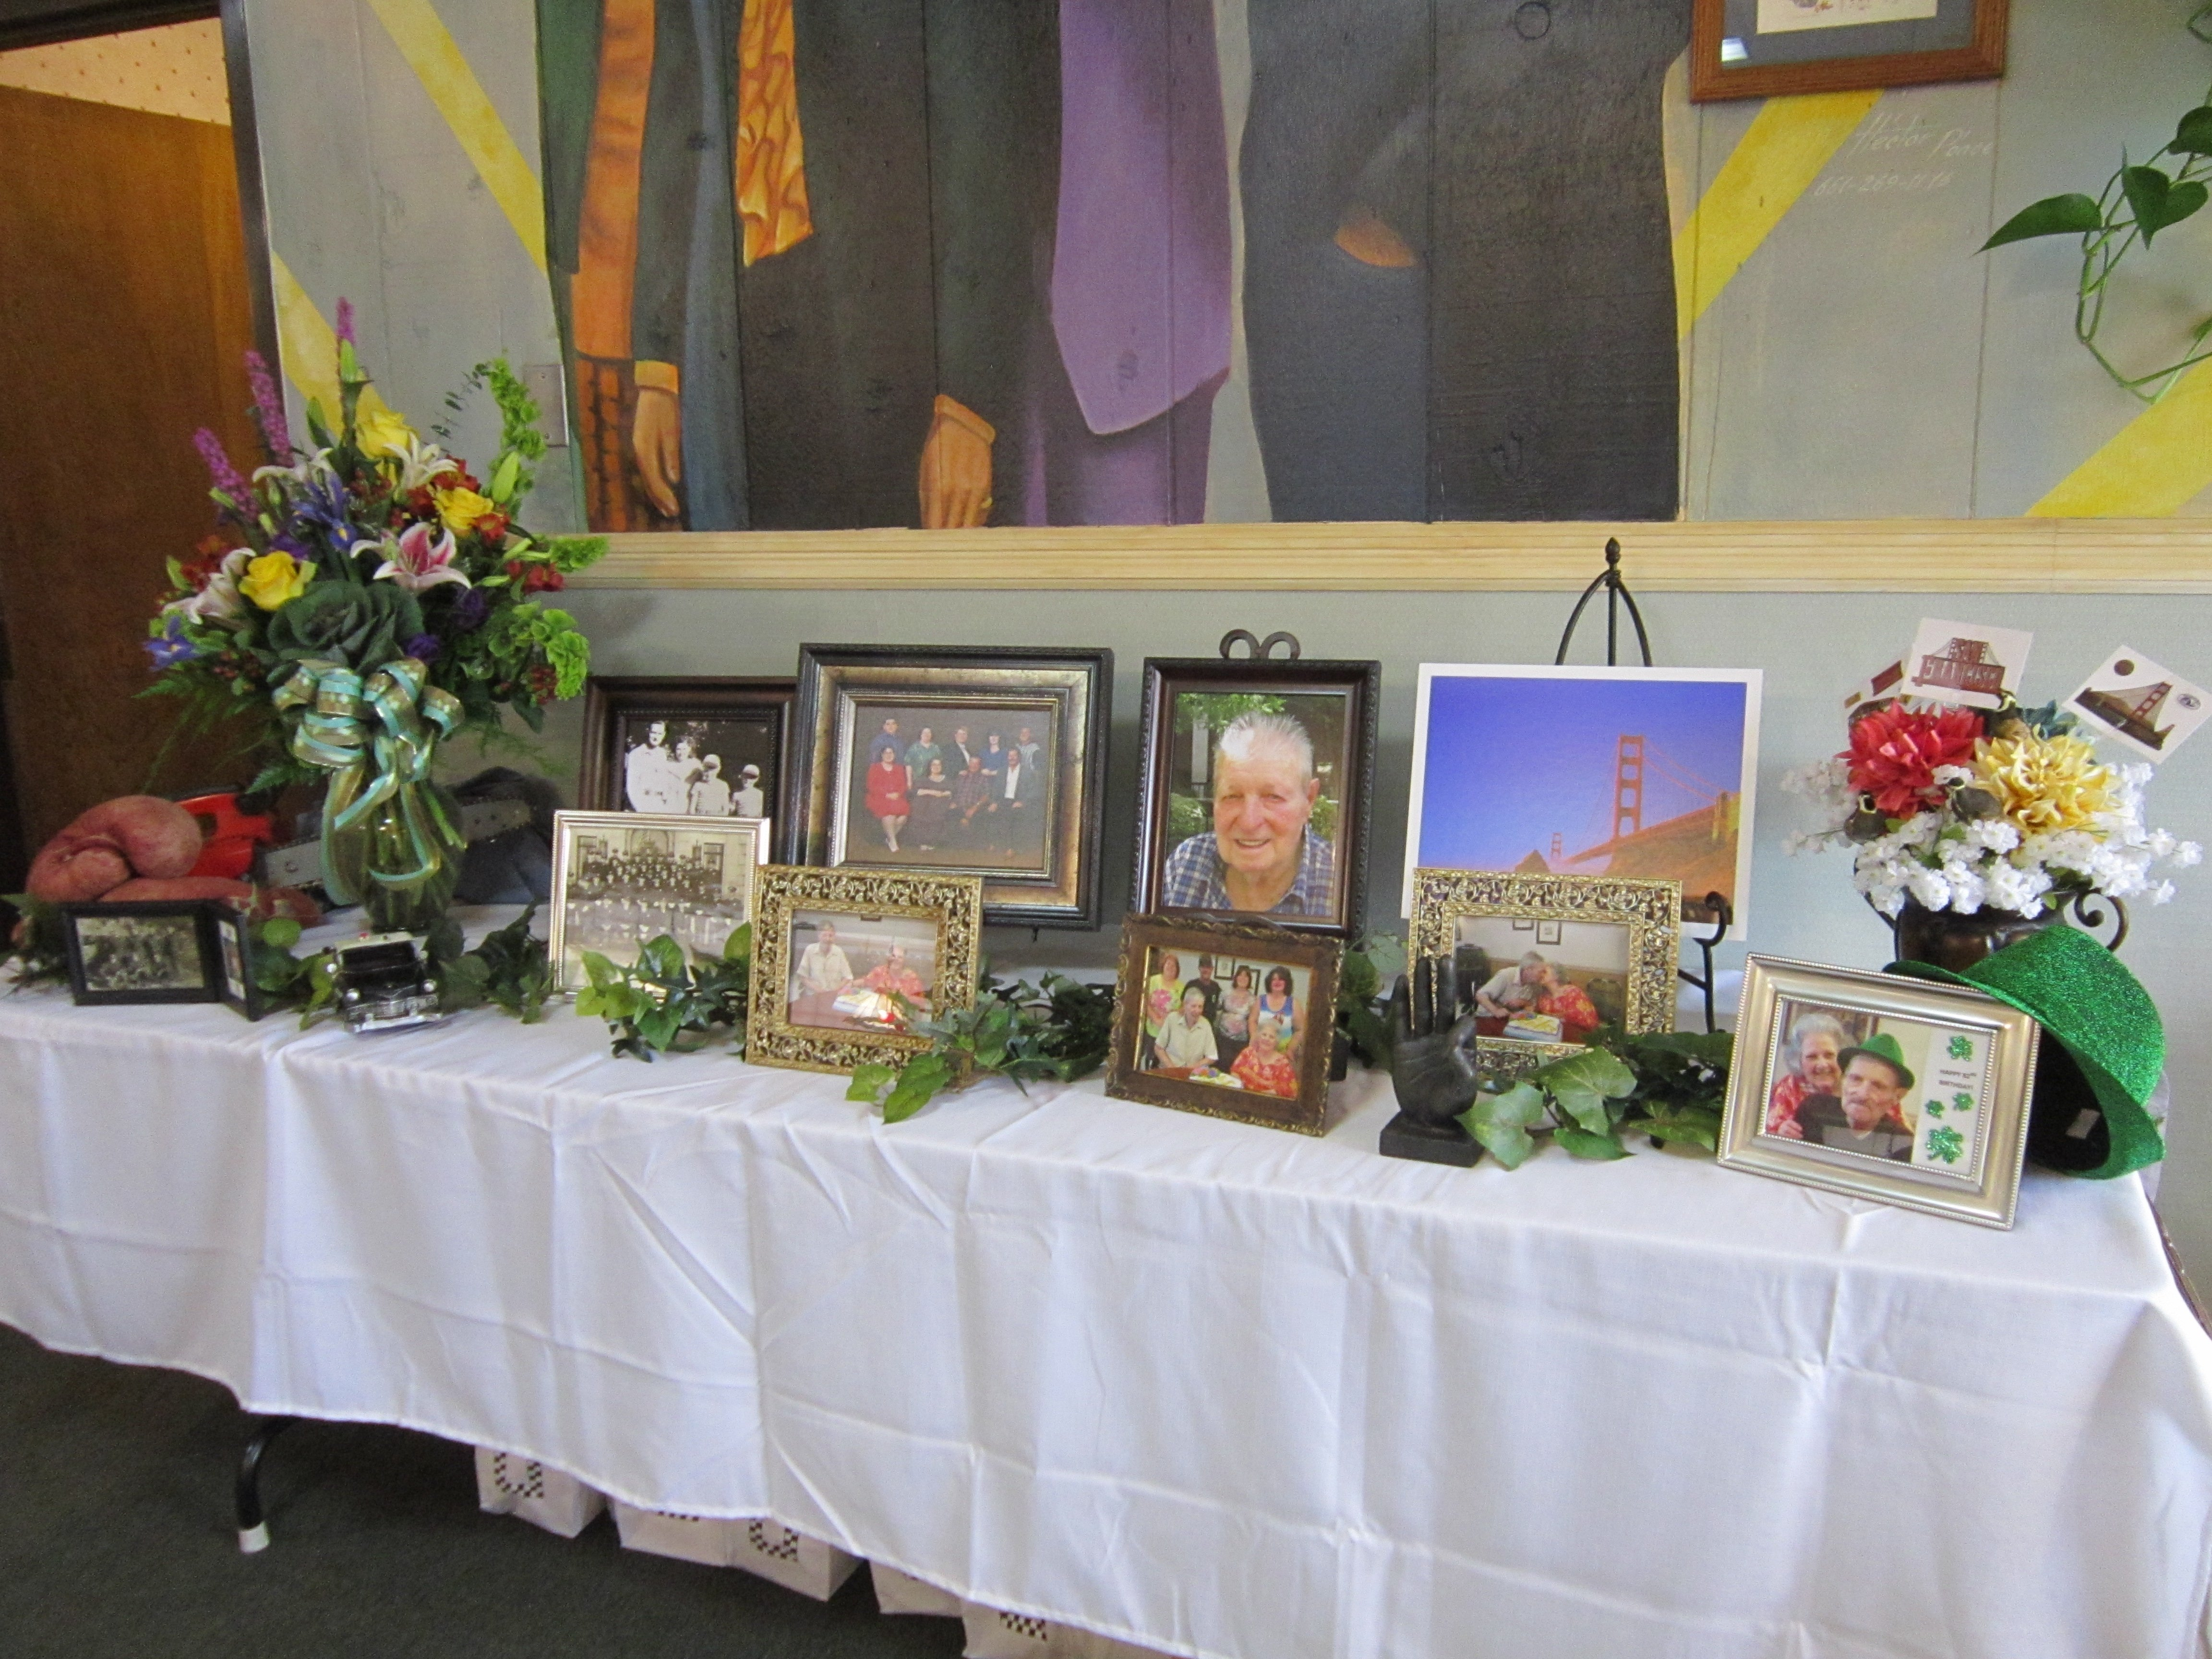 kat wrote: this was the memorial table at my dad's celebration of